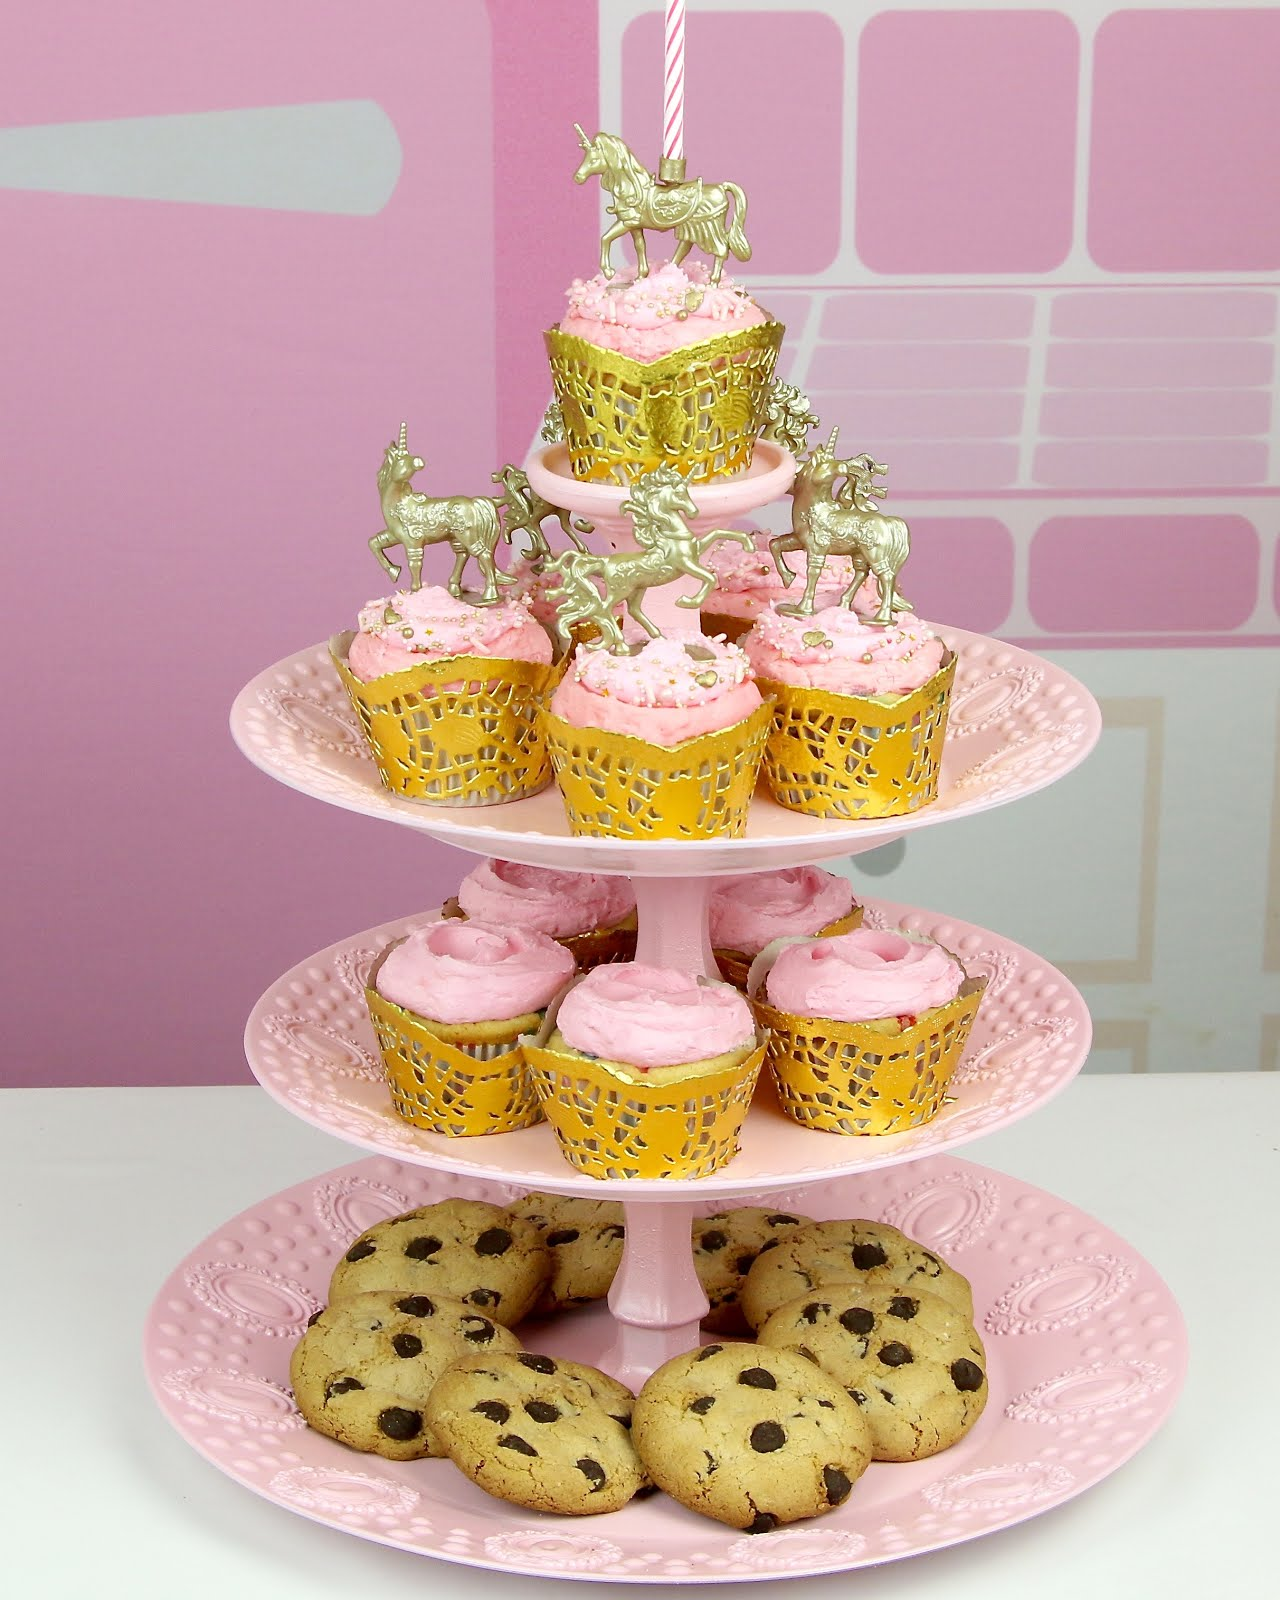 {VIDEO} DIY Dollar Store Cupcake Stand - The Lindsay Ann